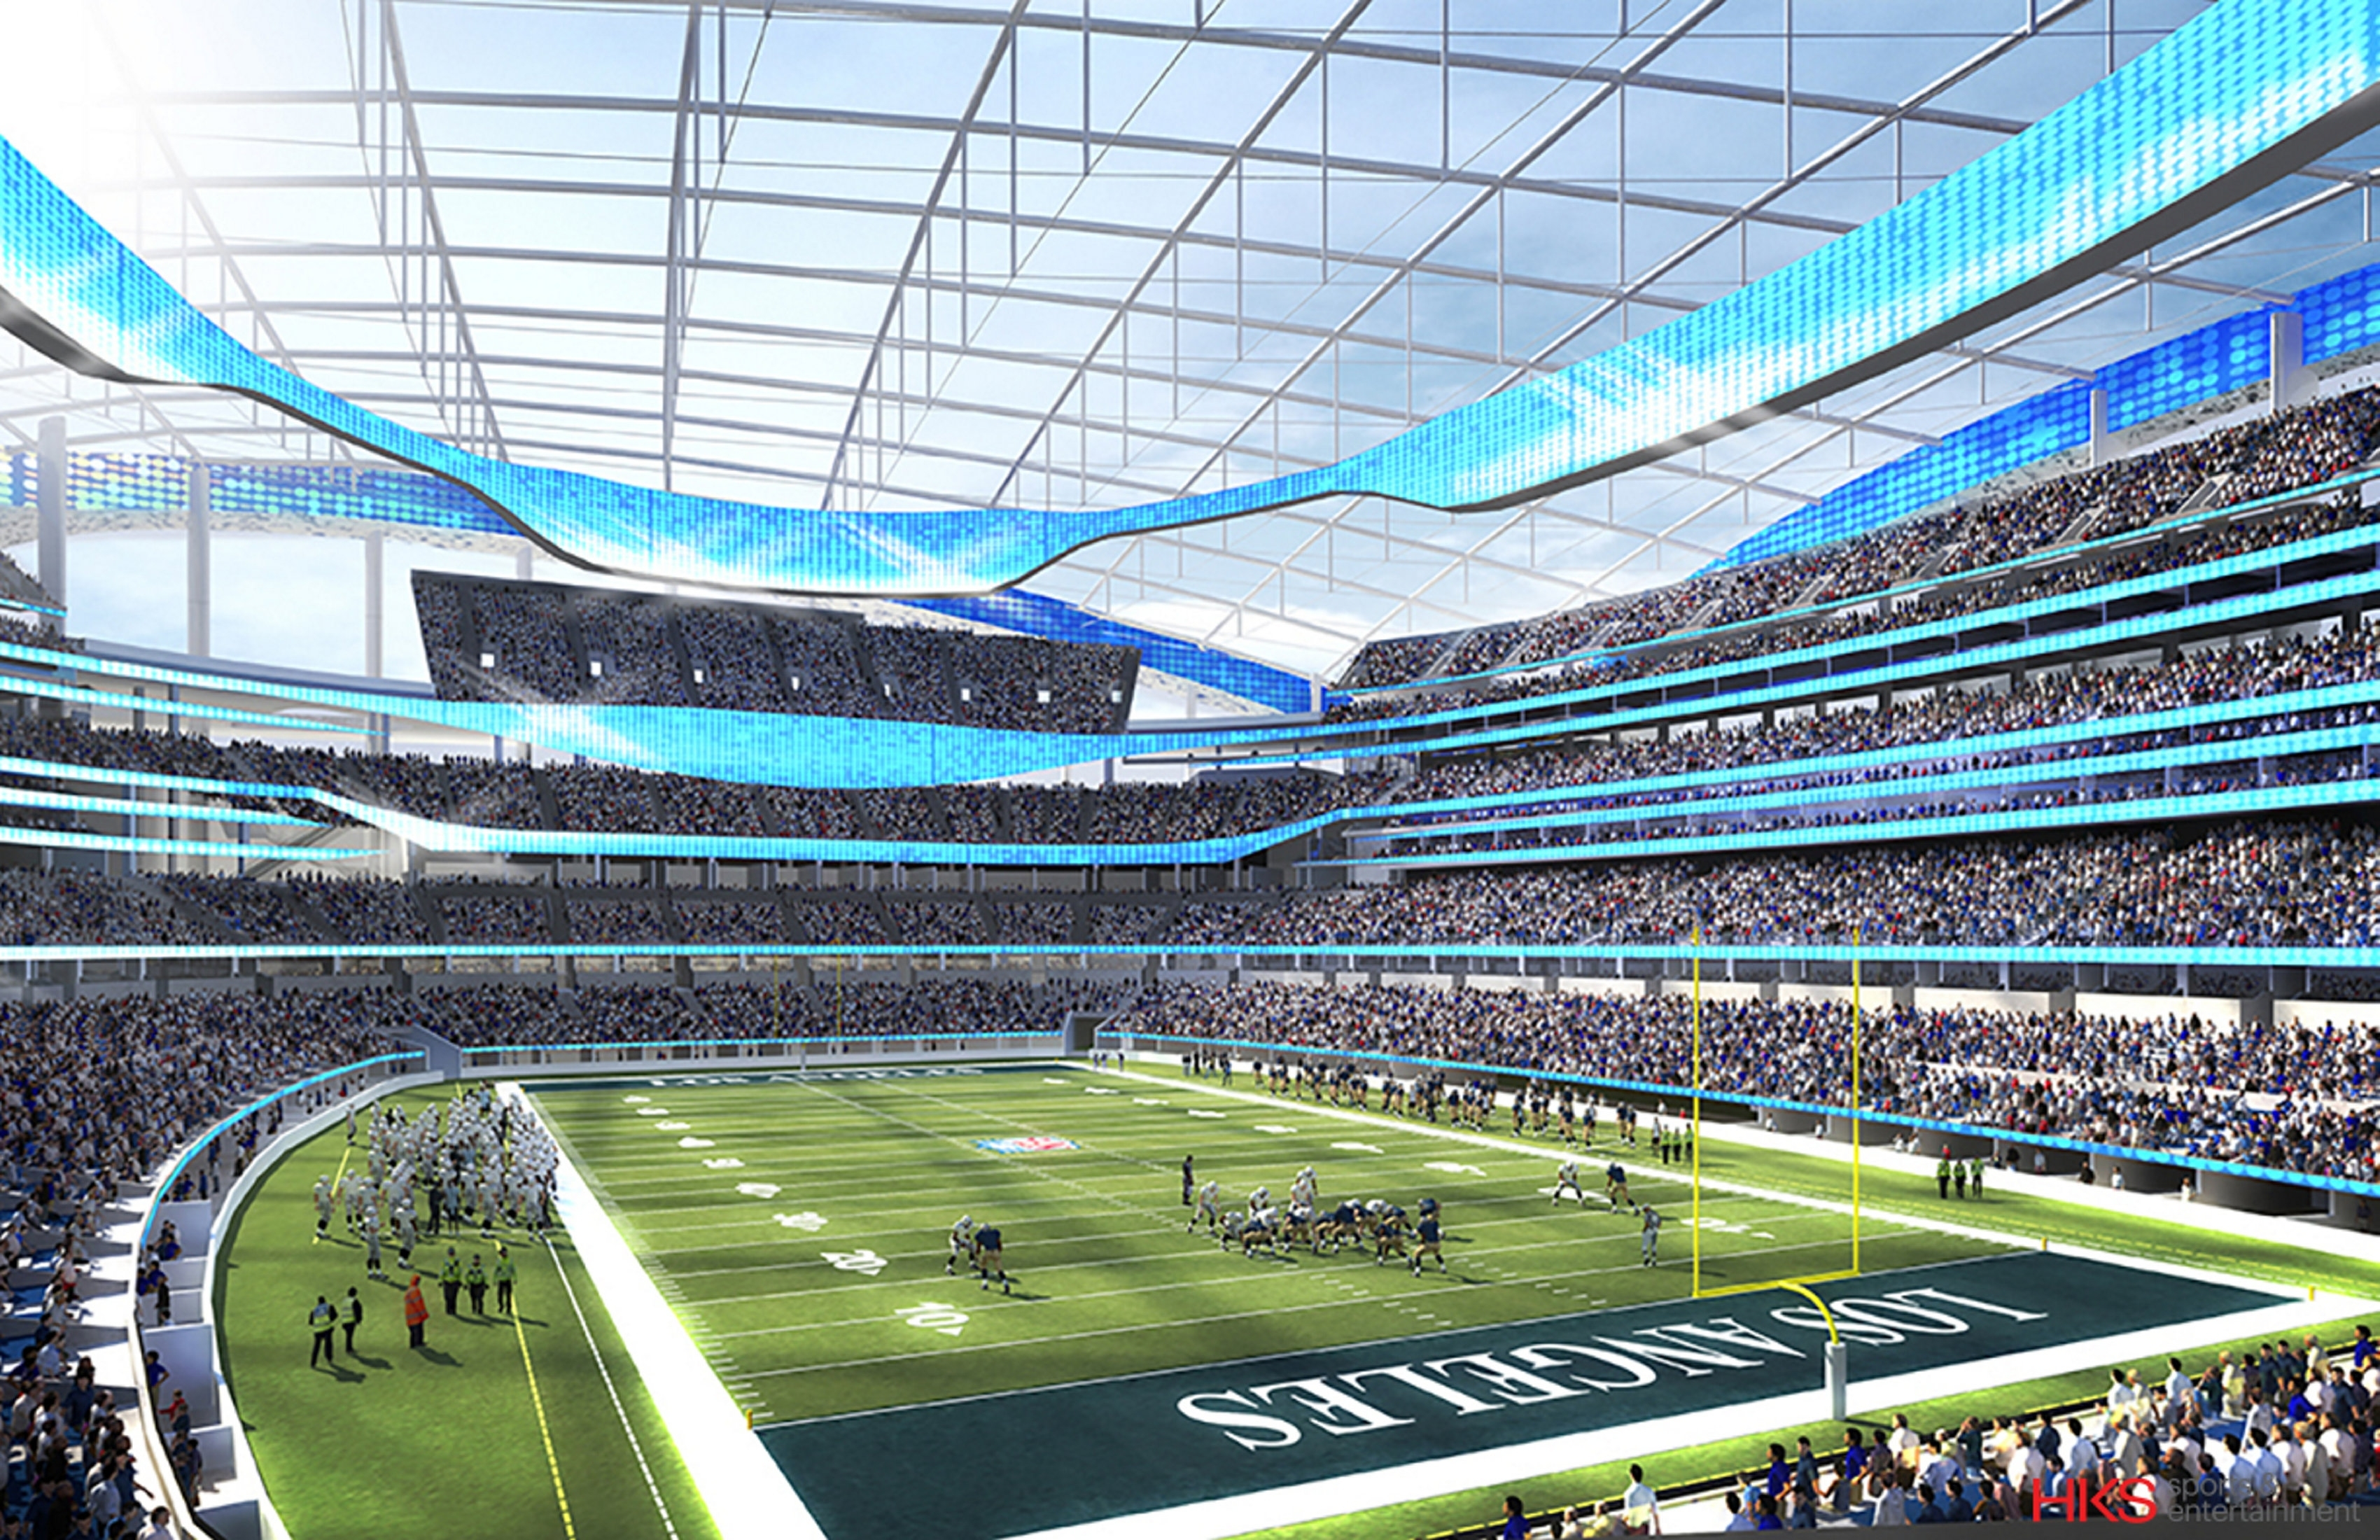 Super Bowl 2021 Awarded To Los Angeles – Daily News inside Super Bowl 2021 Tickets